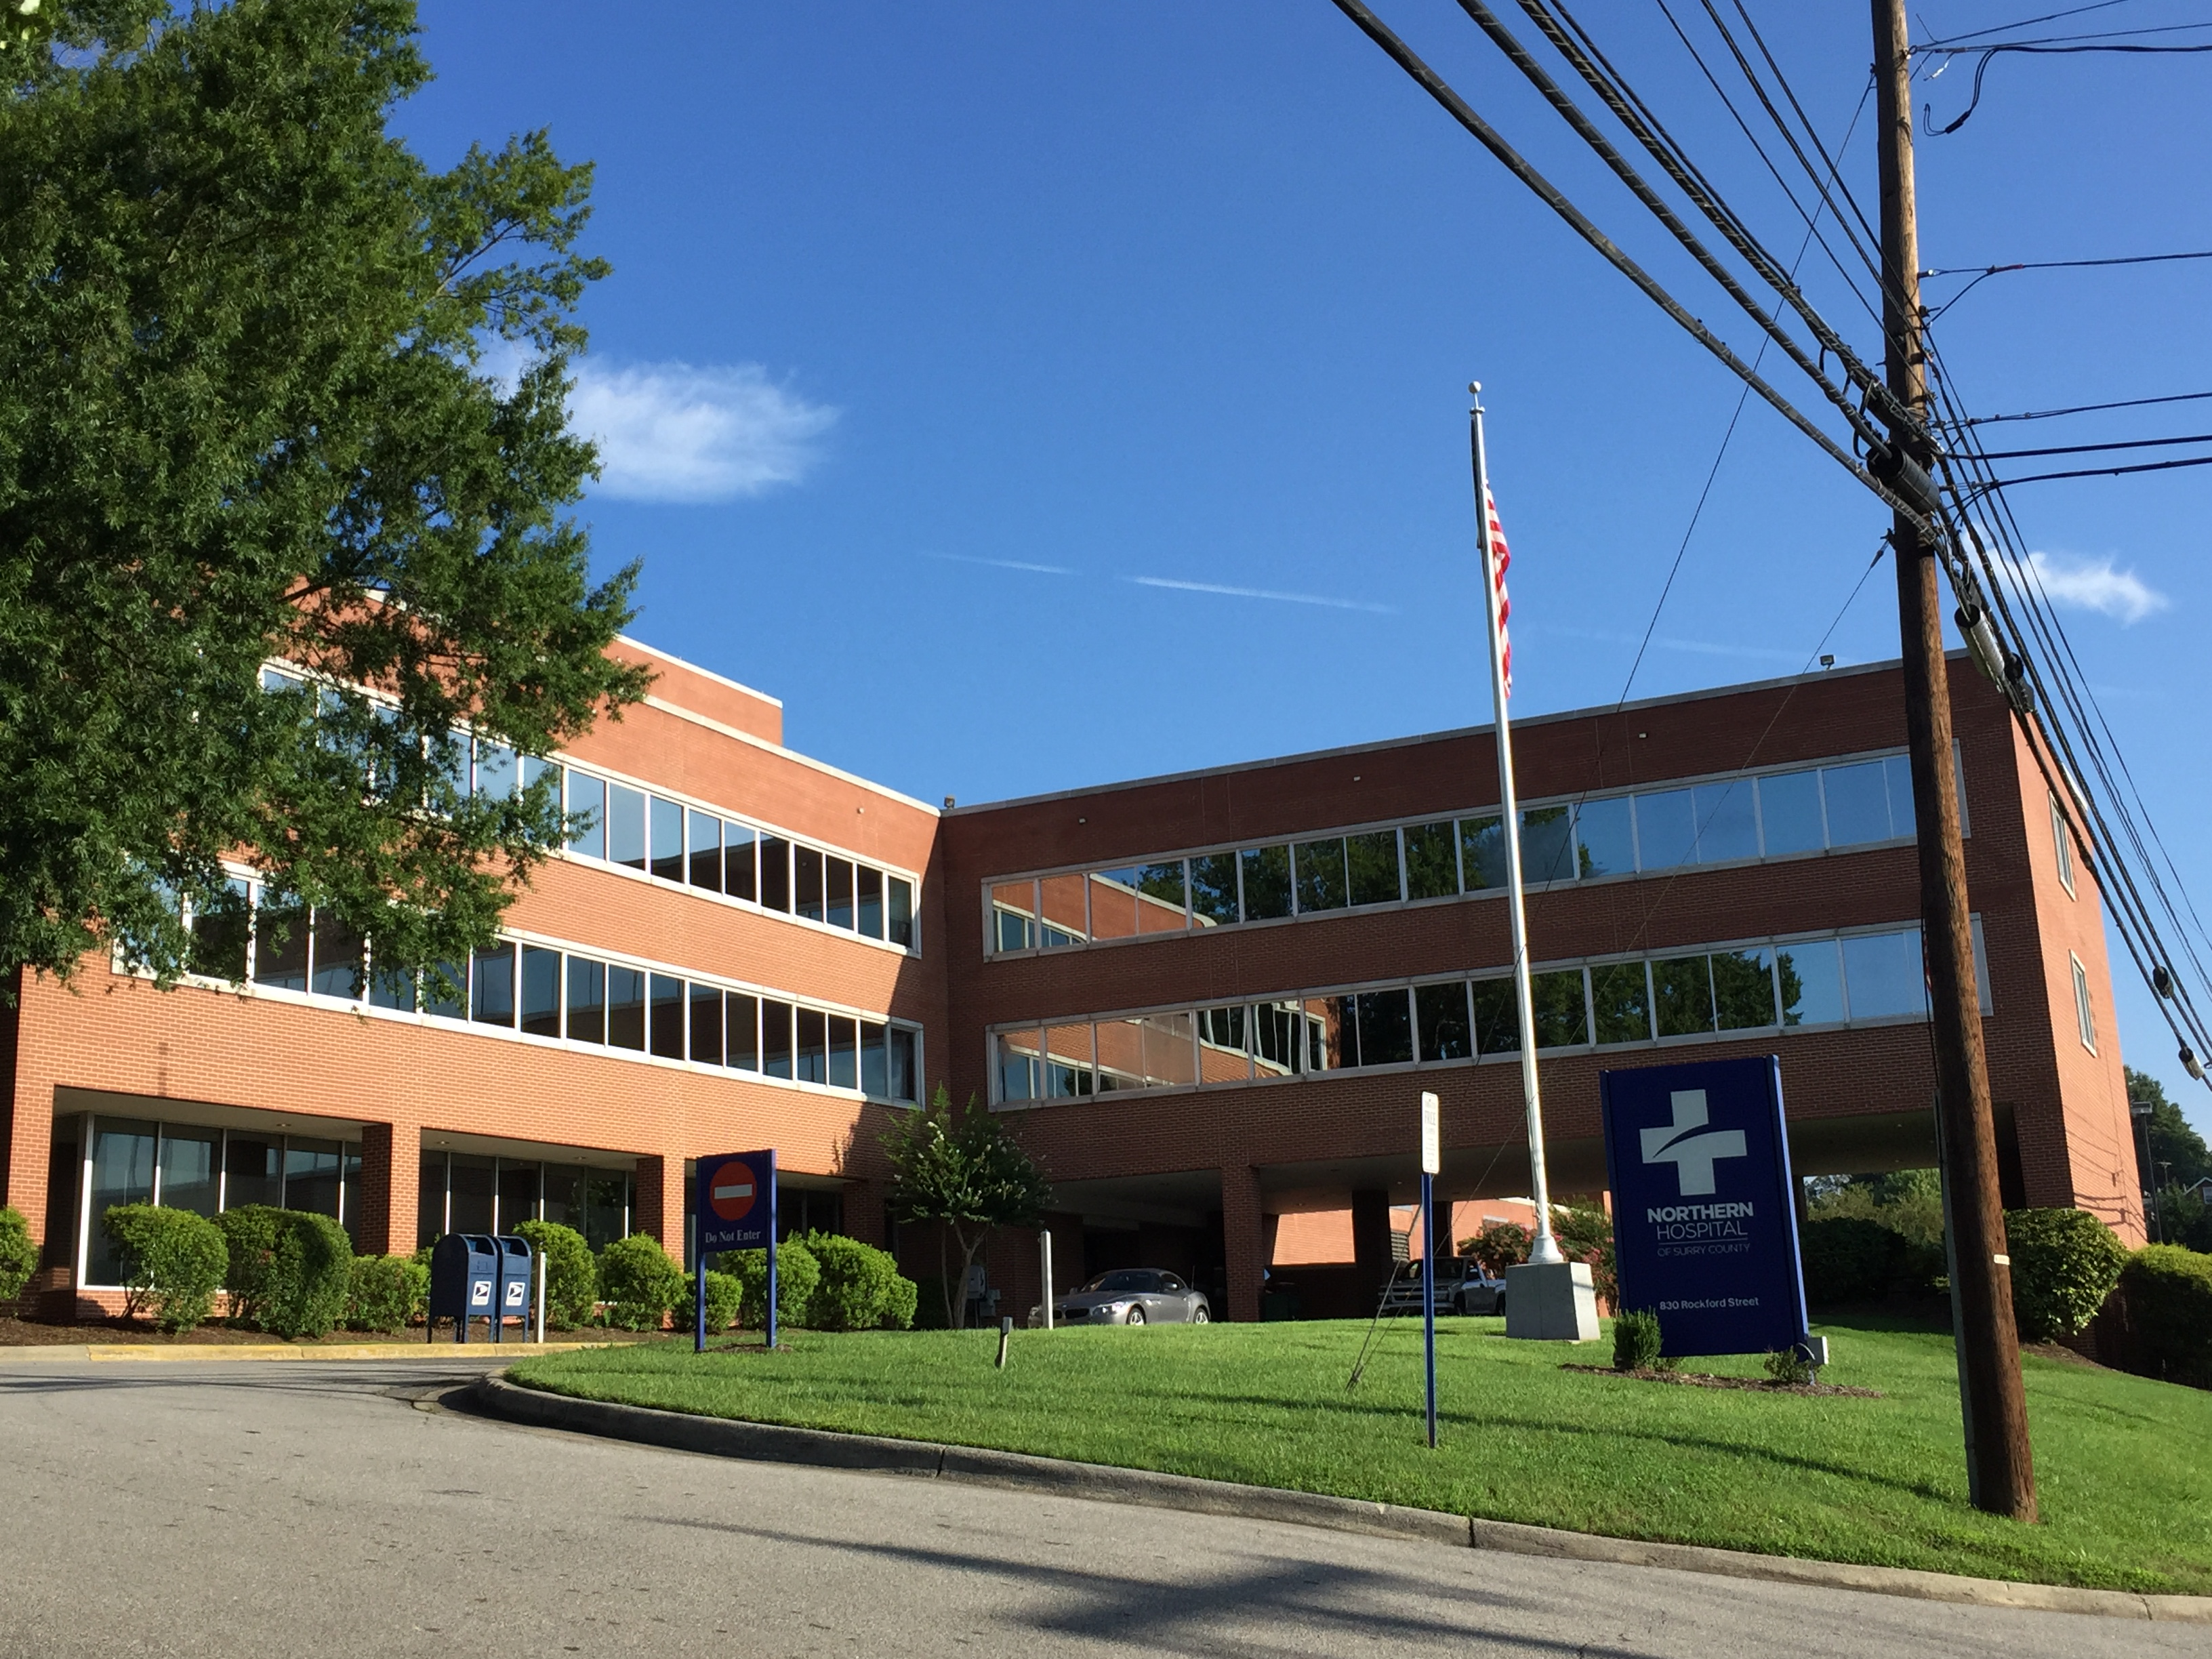 Northern Hospital of Surry County image 1